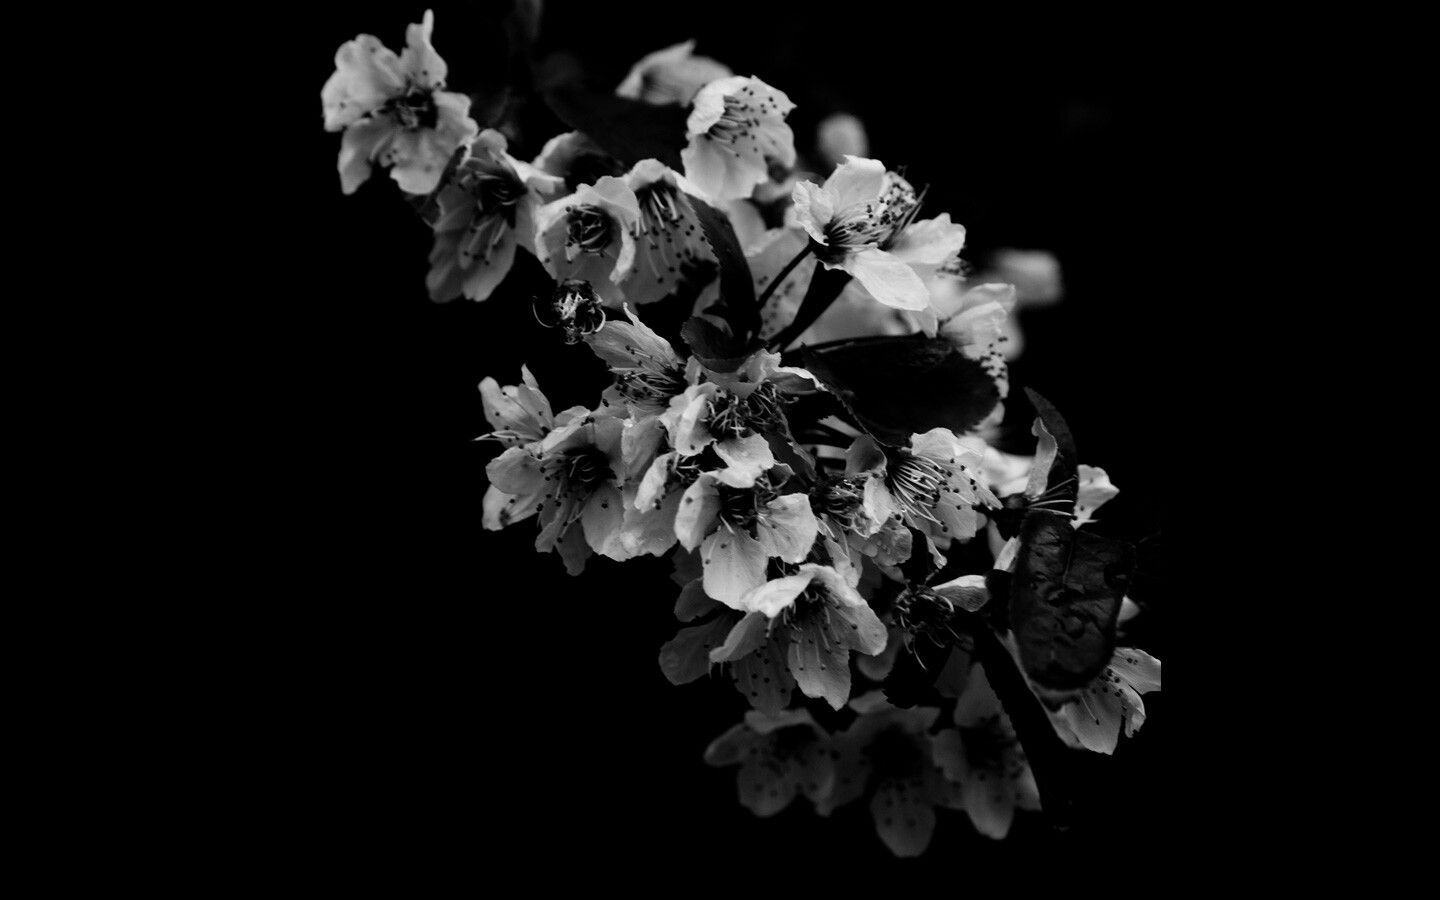 1440x900 Pin by Vanessa Rojas on ▩Black and White Beauty▦   Pinterest